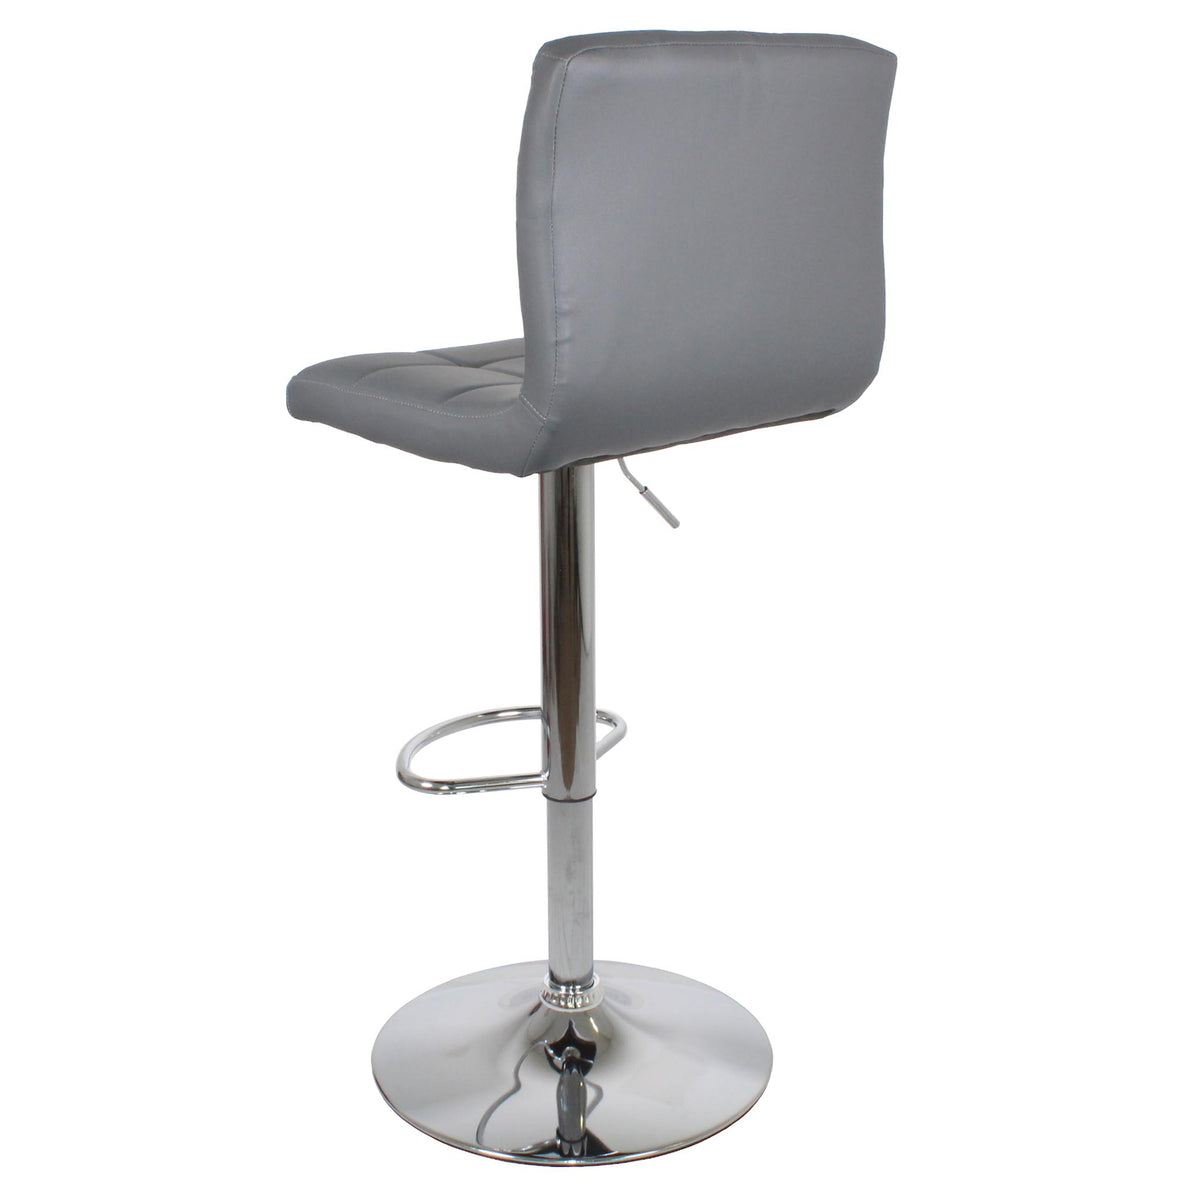 Back view of the Sky Grey Elton Adjustable Breakfast Bar Stool from Roseland Furniture